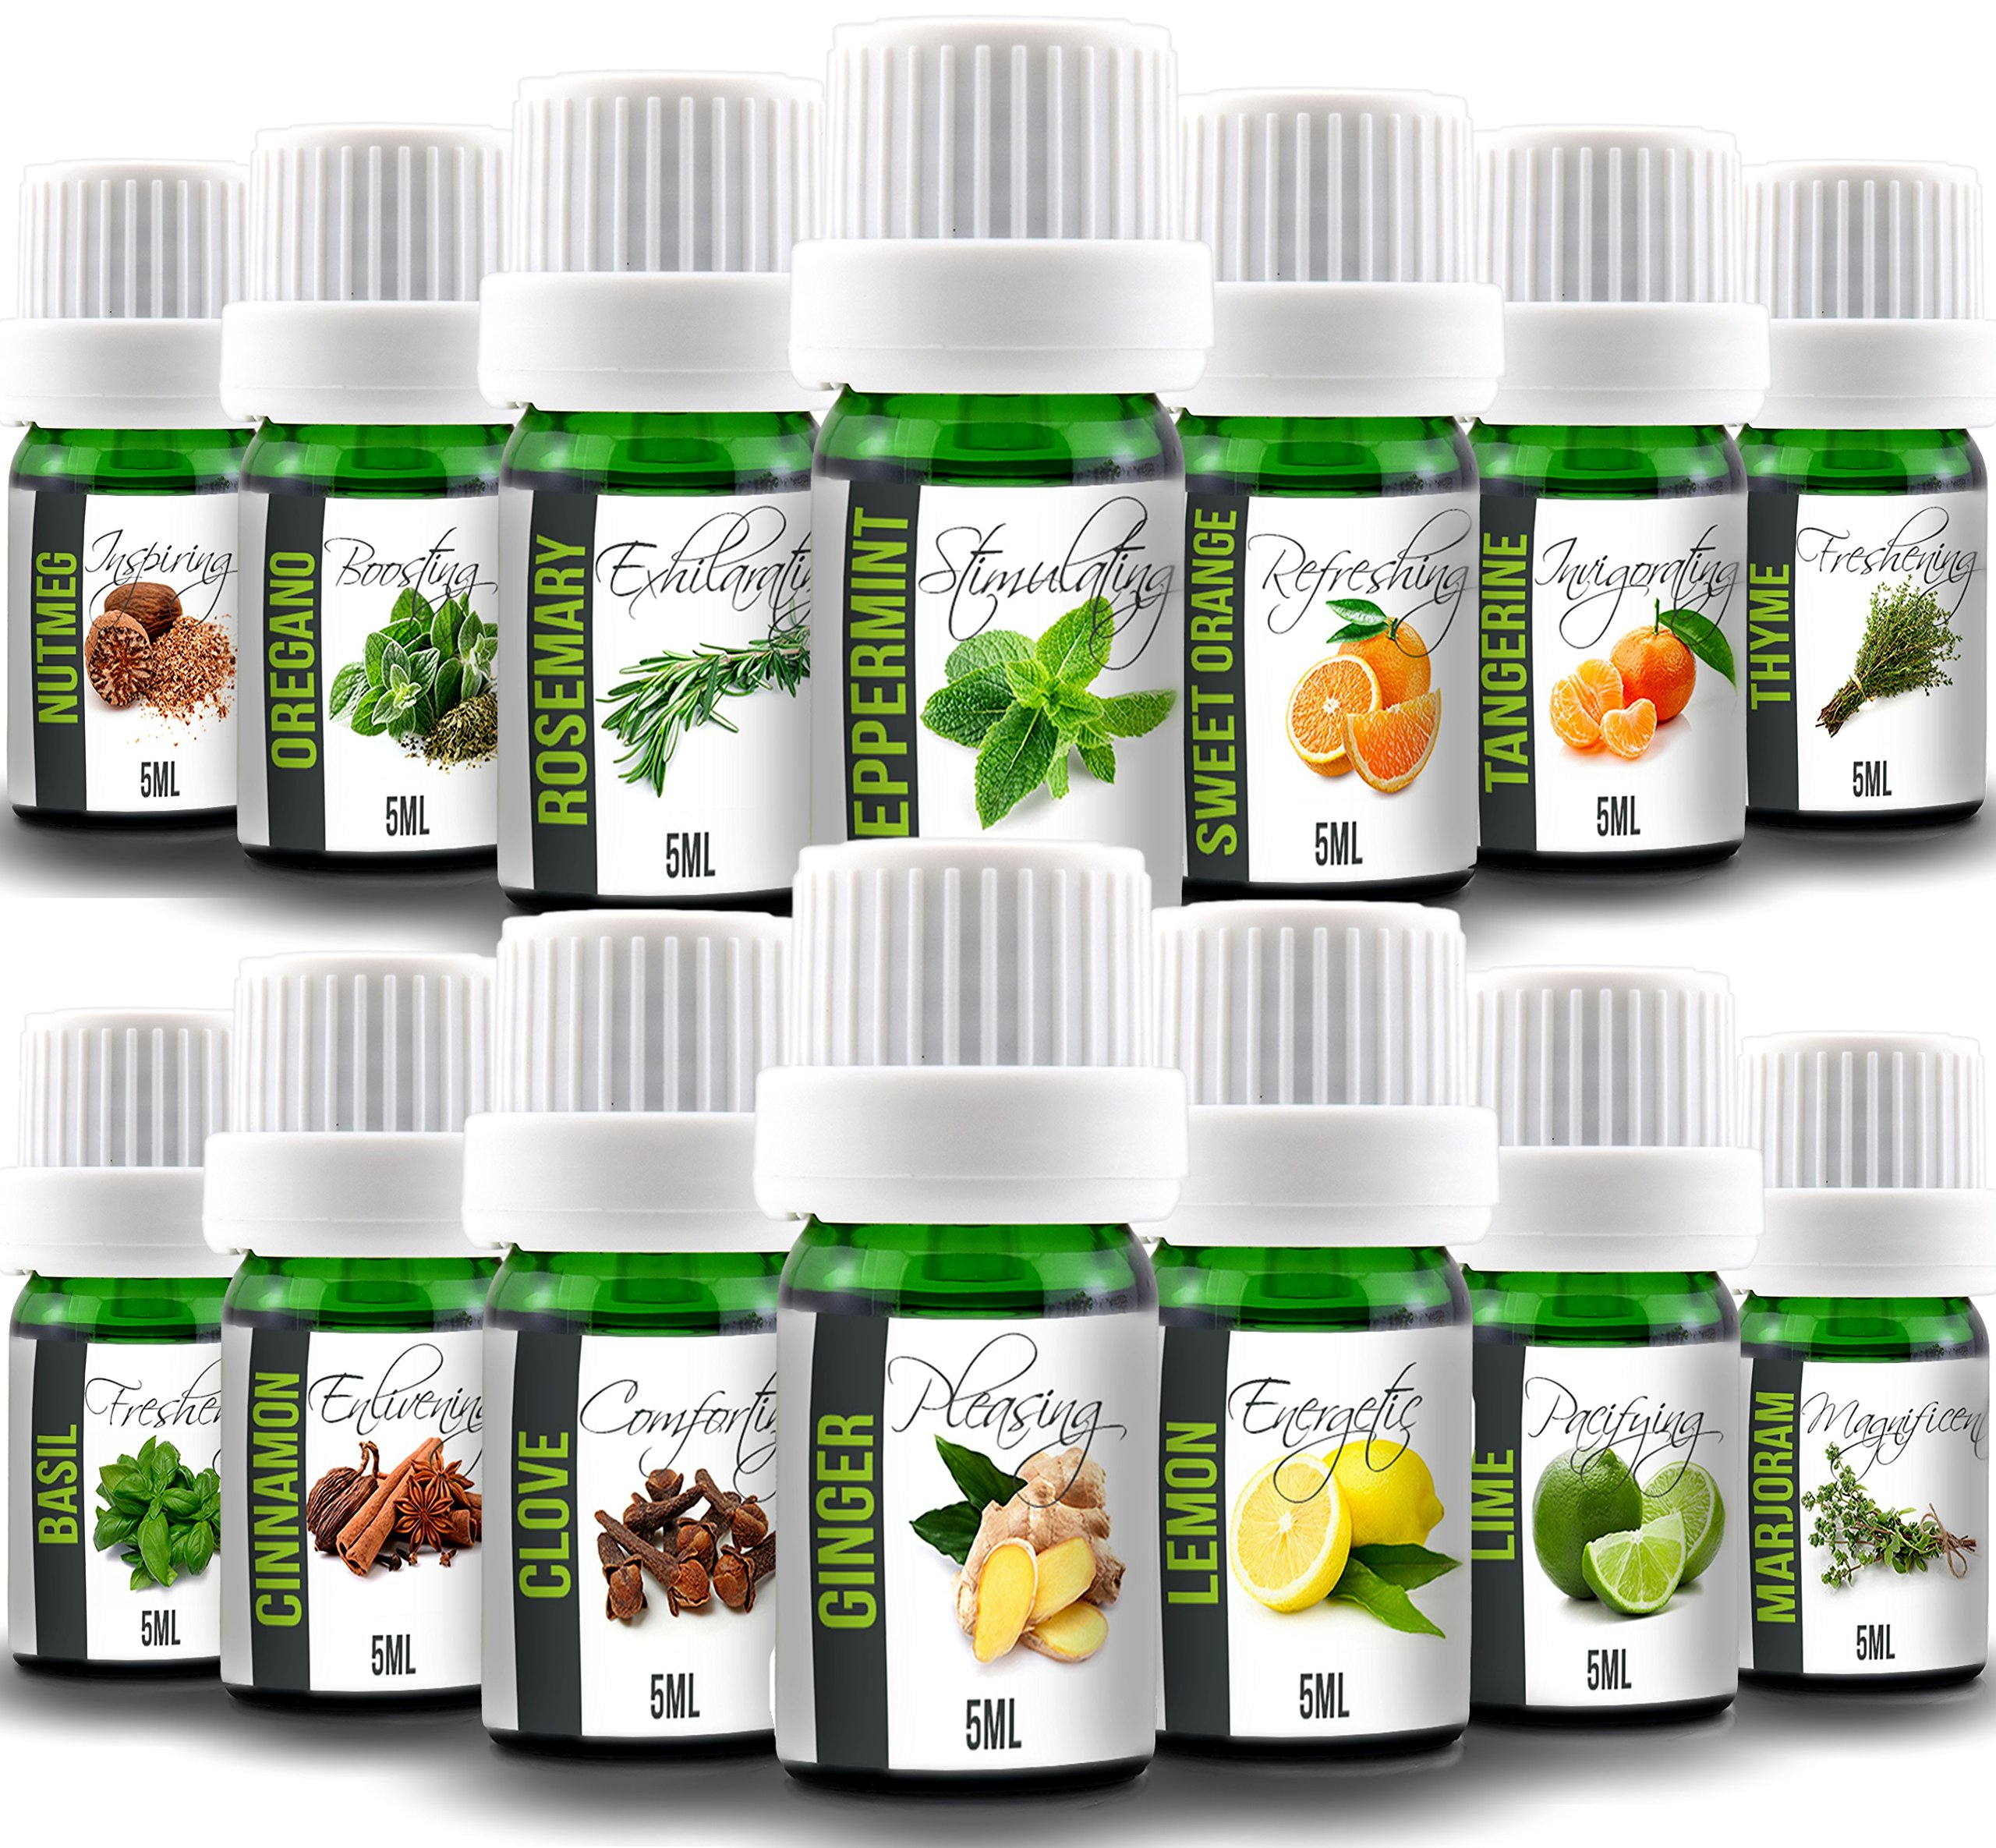 Aroma2Go Cooking Set of 14 Natural 100% Pure Plant Based Essential Oil Set with 14 Oils needed in the kitchen. Top Selling Aromatherapy Bundle Set